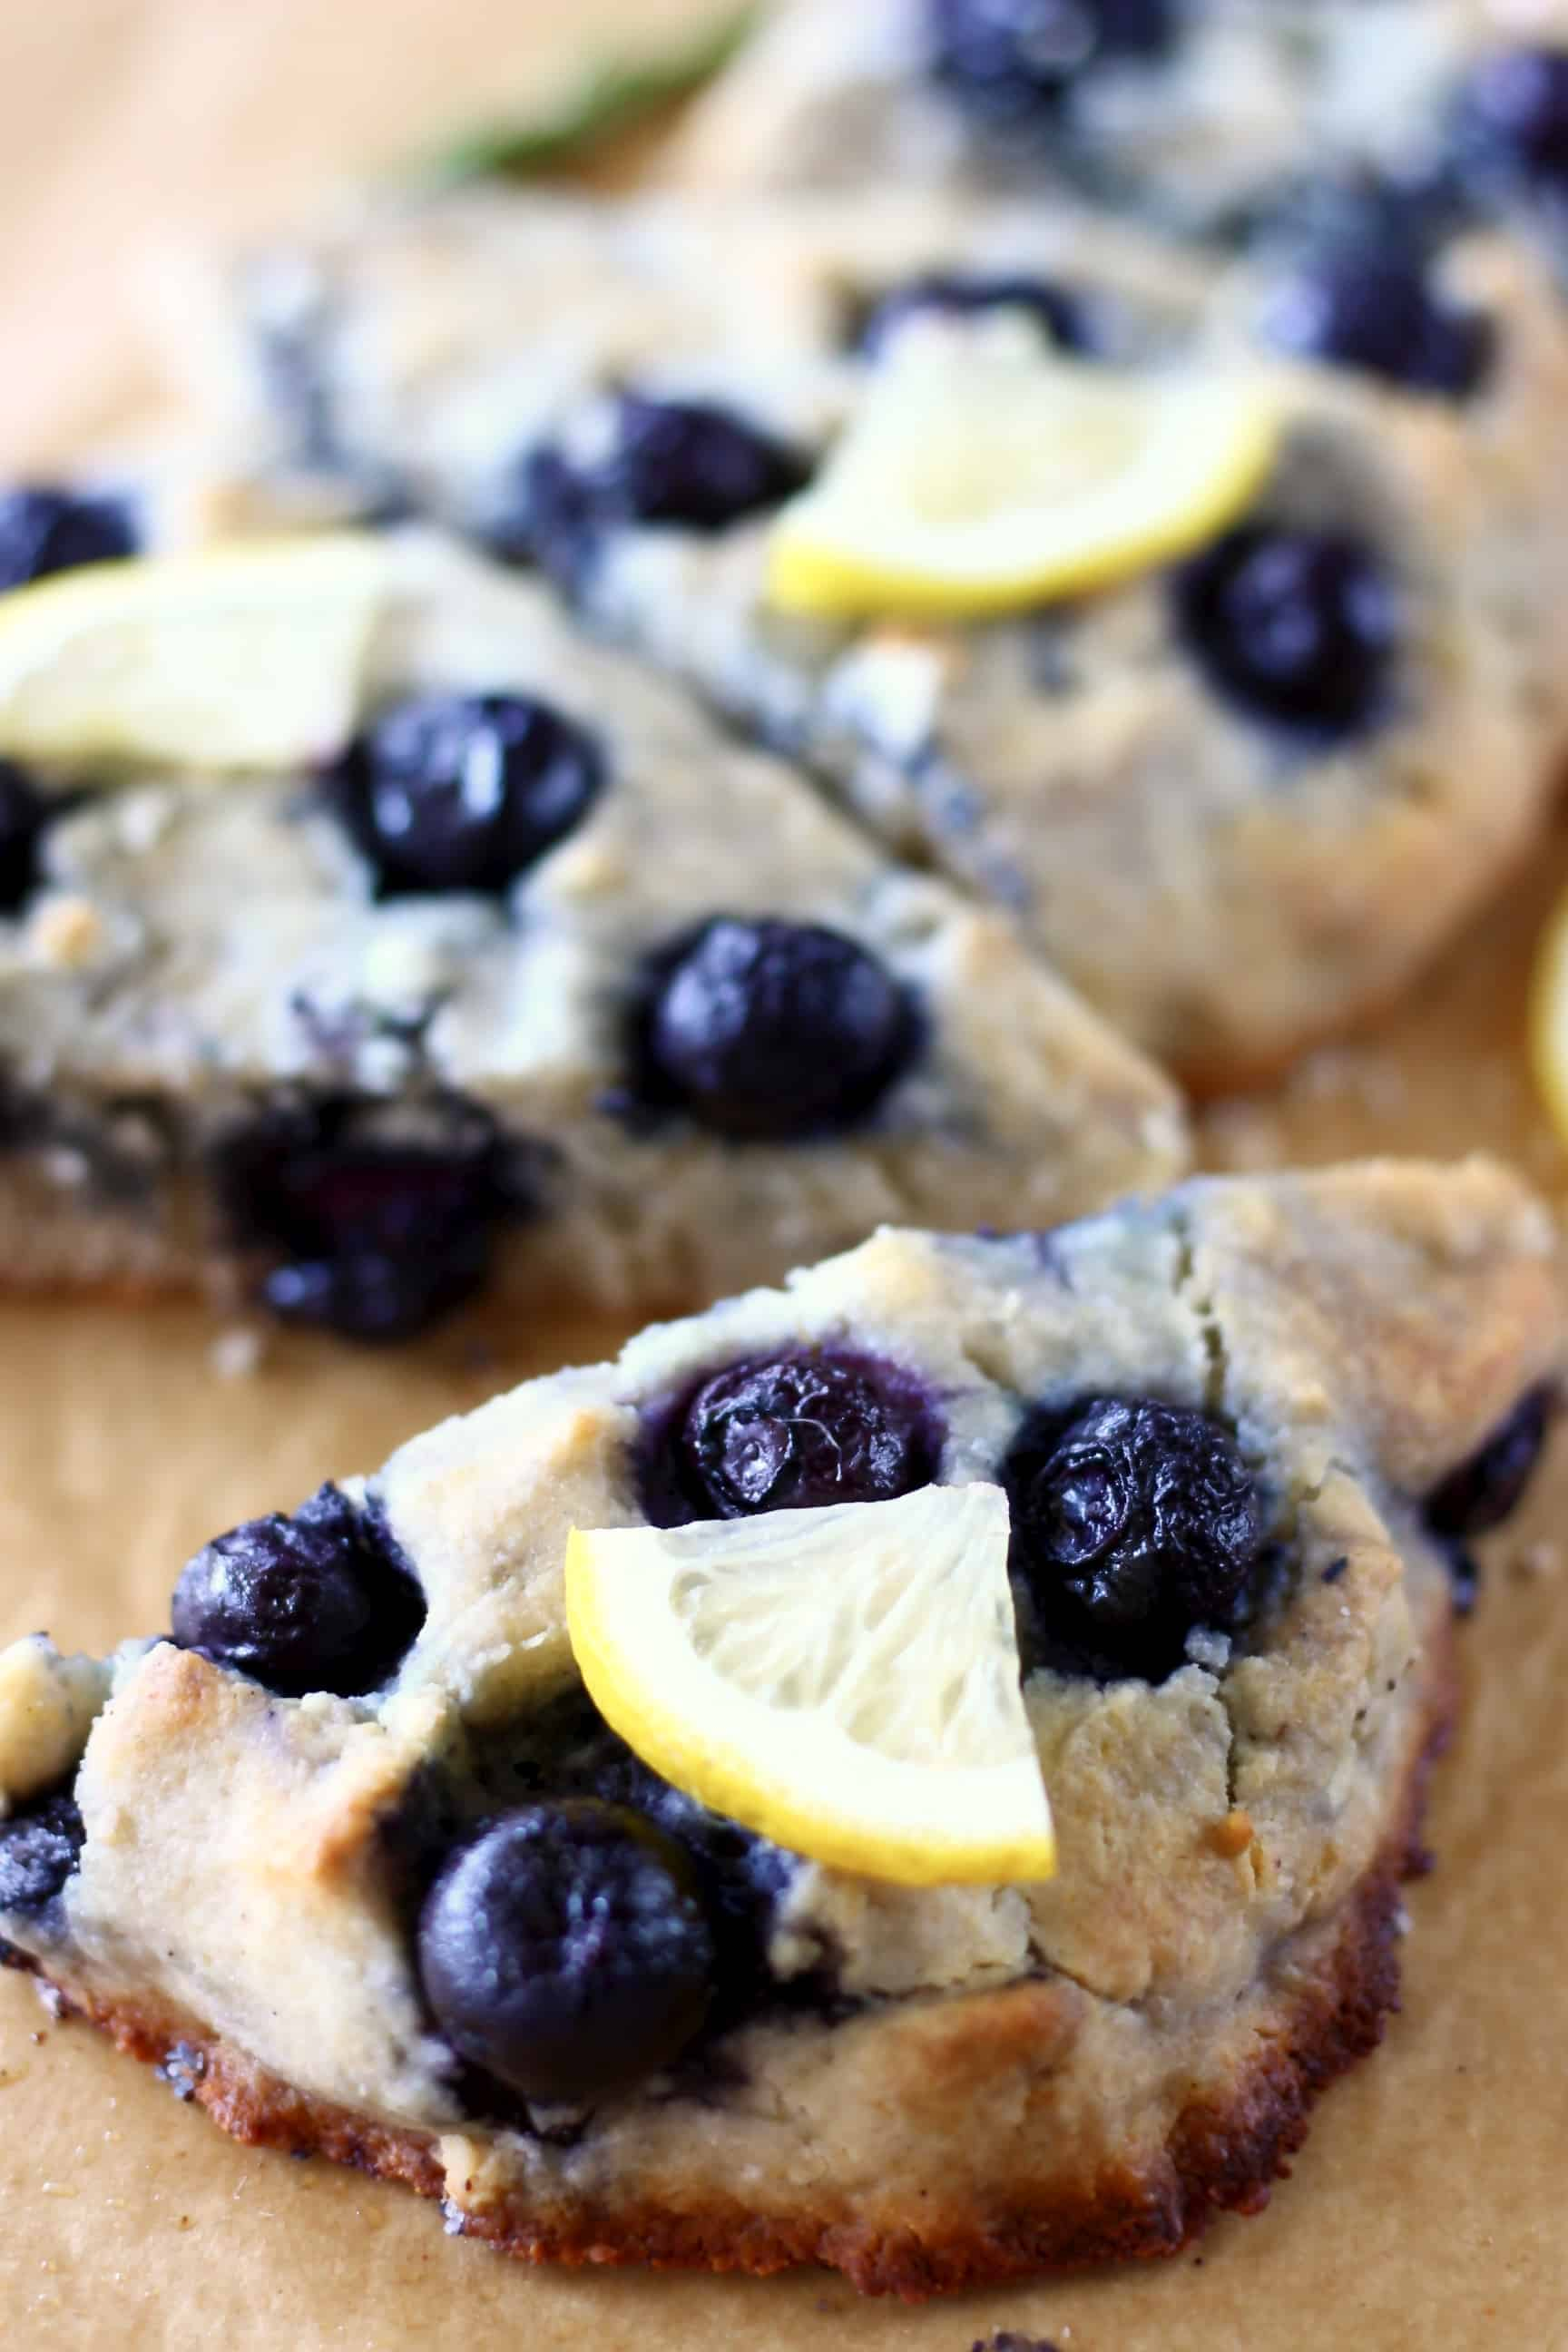 Three gluten-free blueberry scones topped with lemon wedges on a sheet of brown baking paper